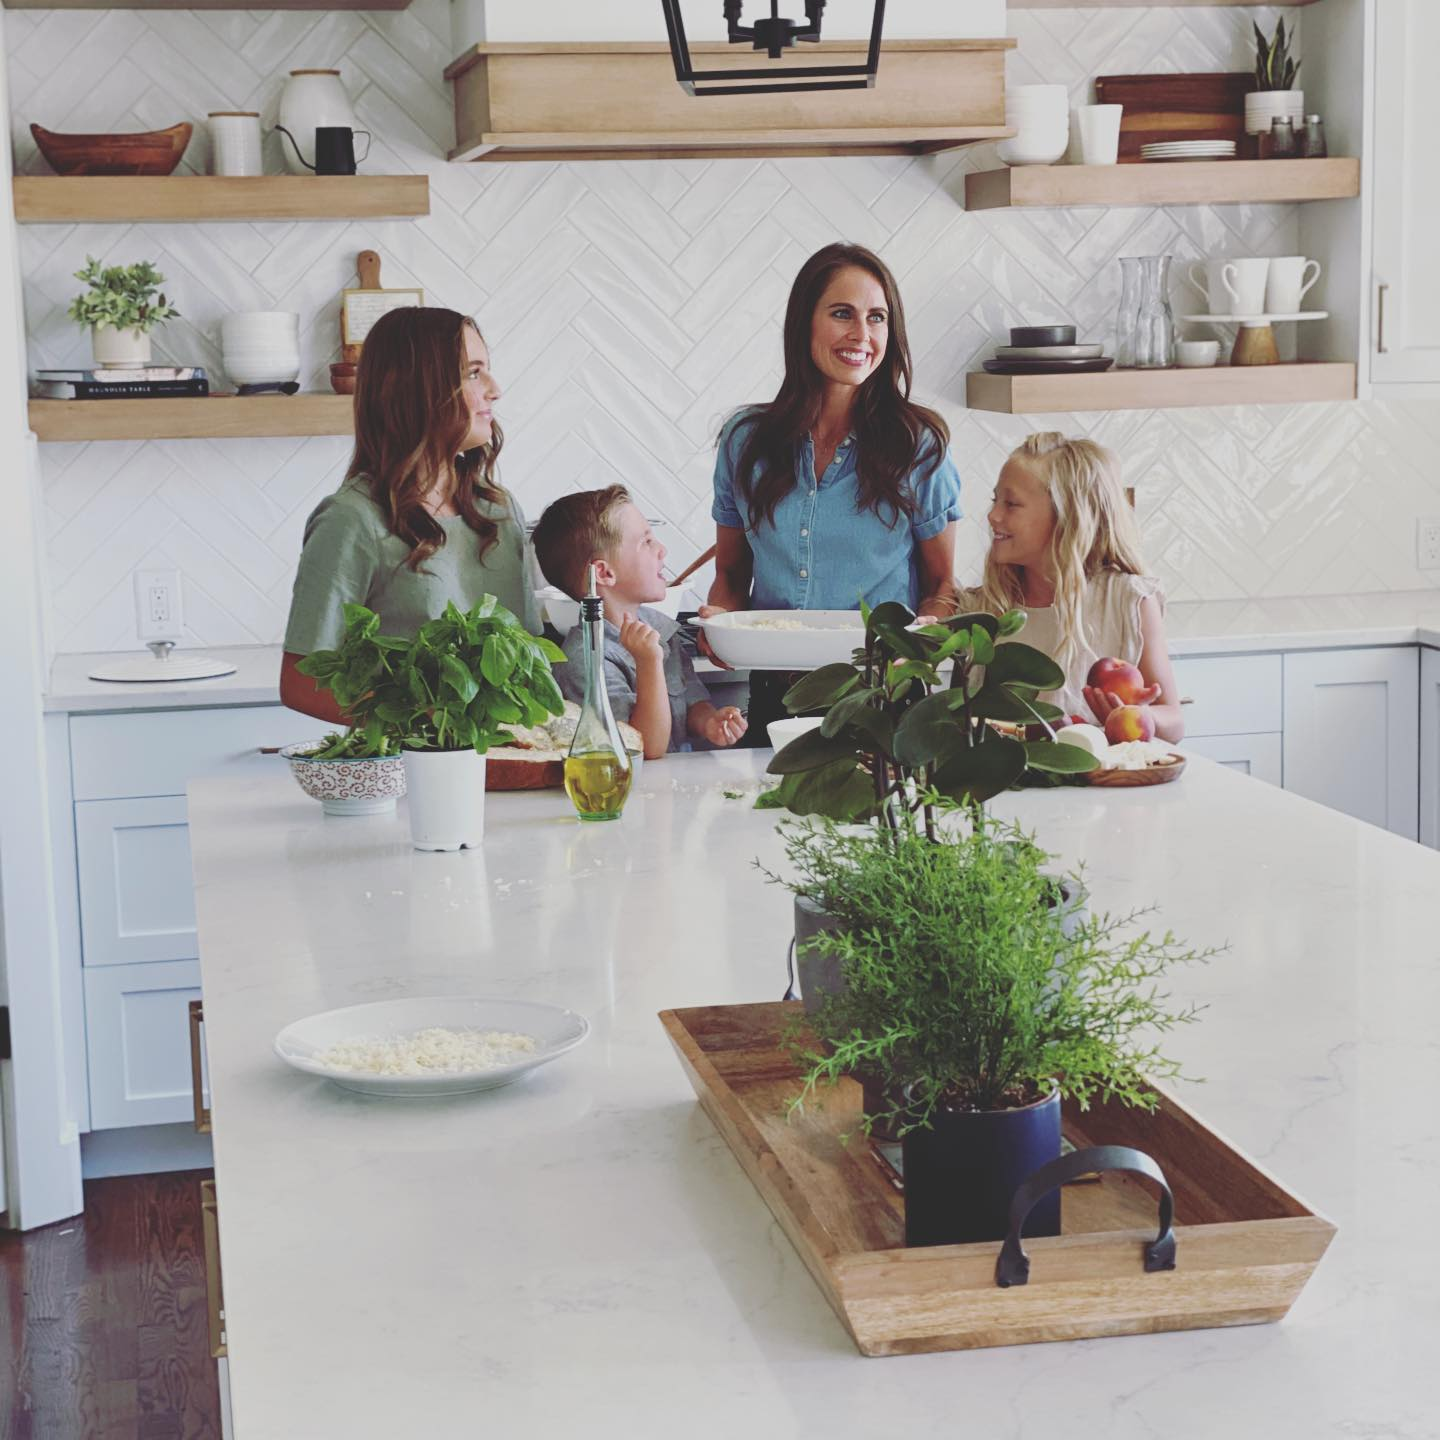 A photo of a mom in the kitchen with her three kids.